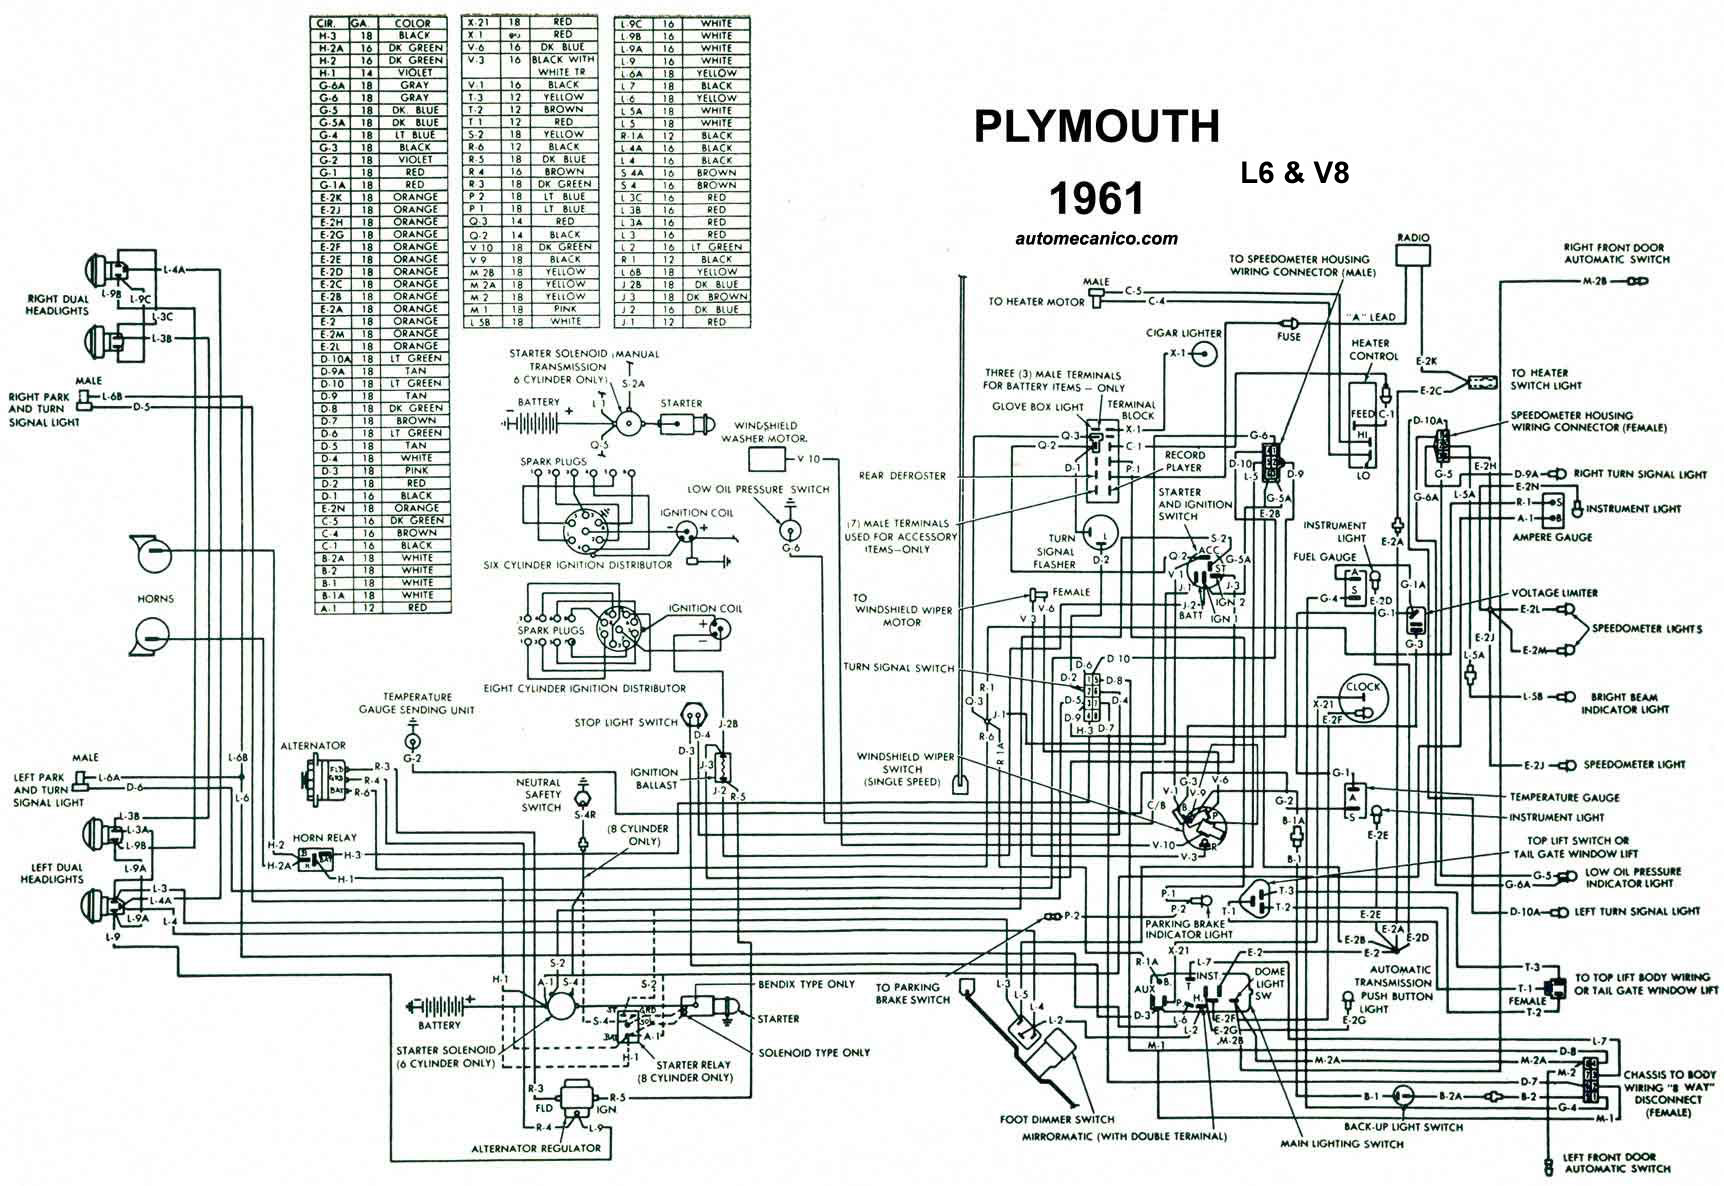 Plymouth Colt Wiring Diagram on 1991 dodge stealth transmission diagram